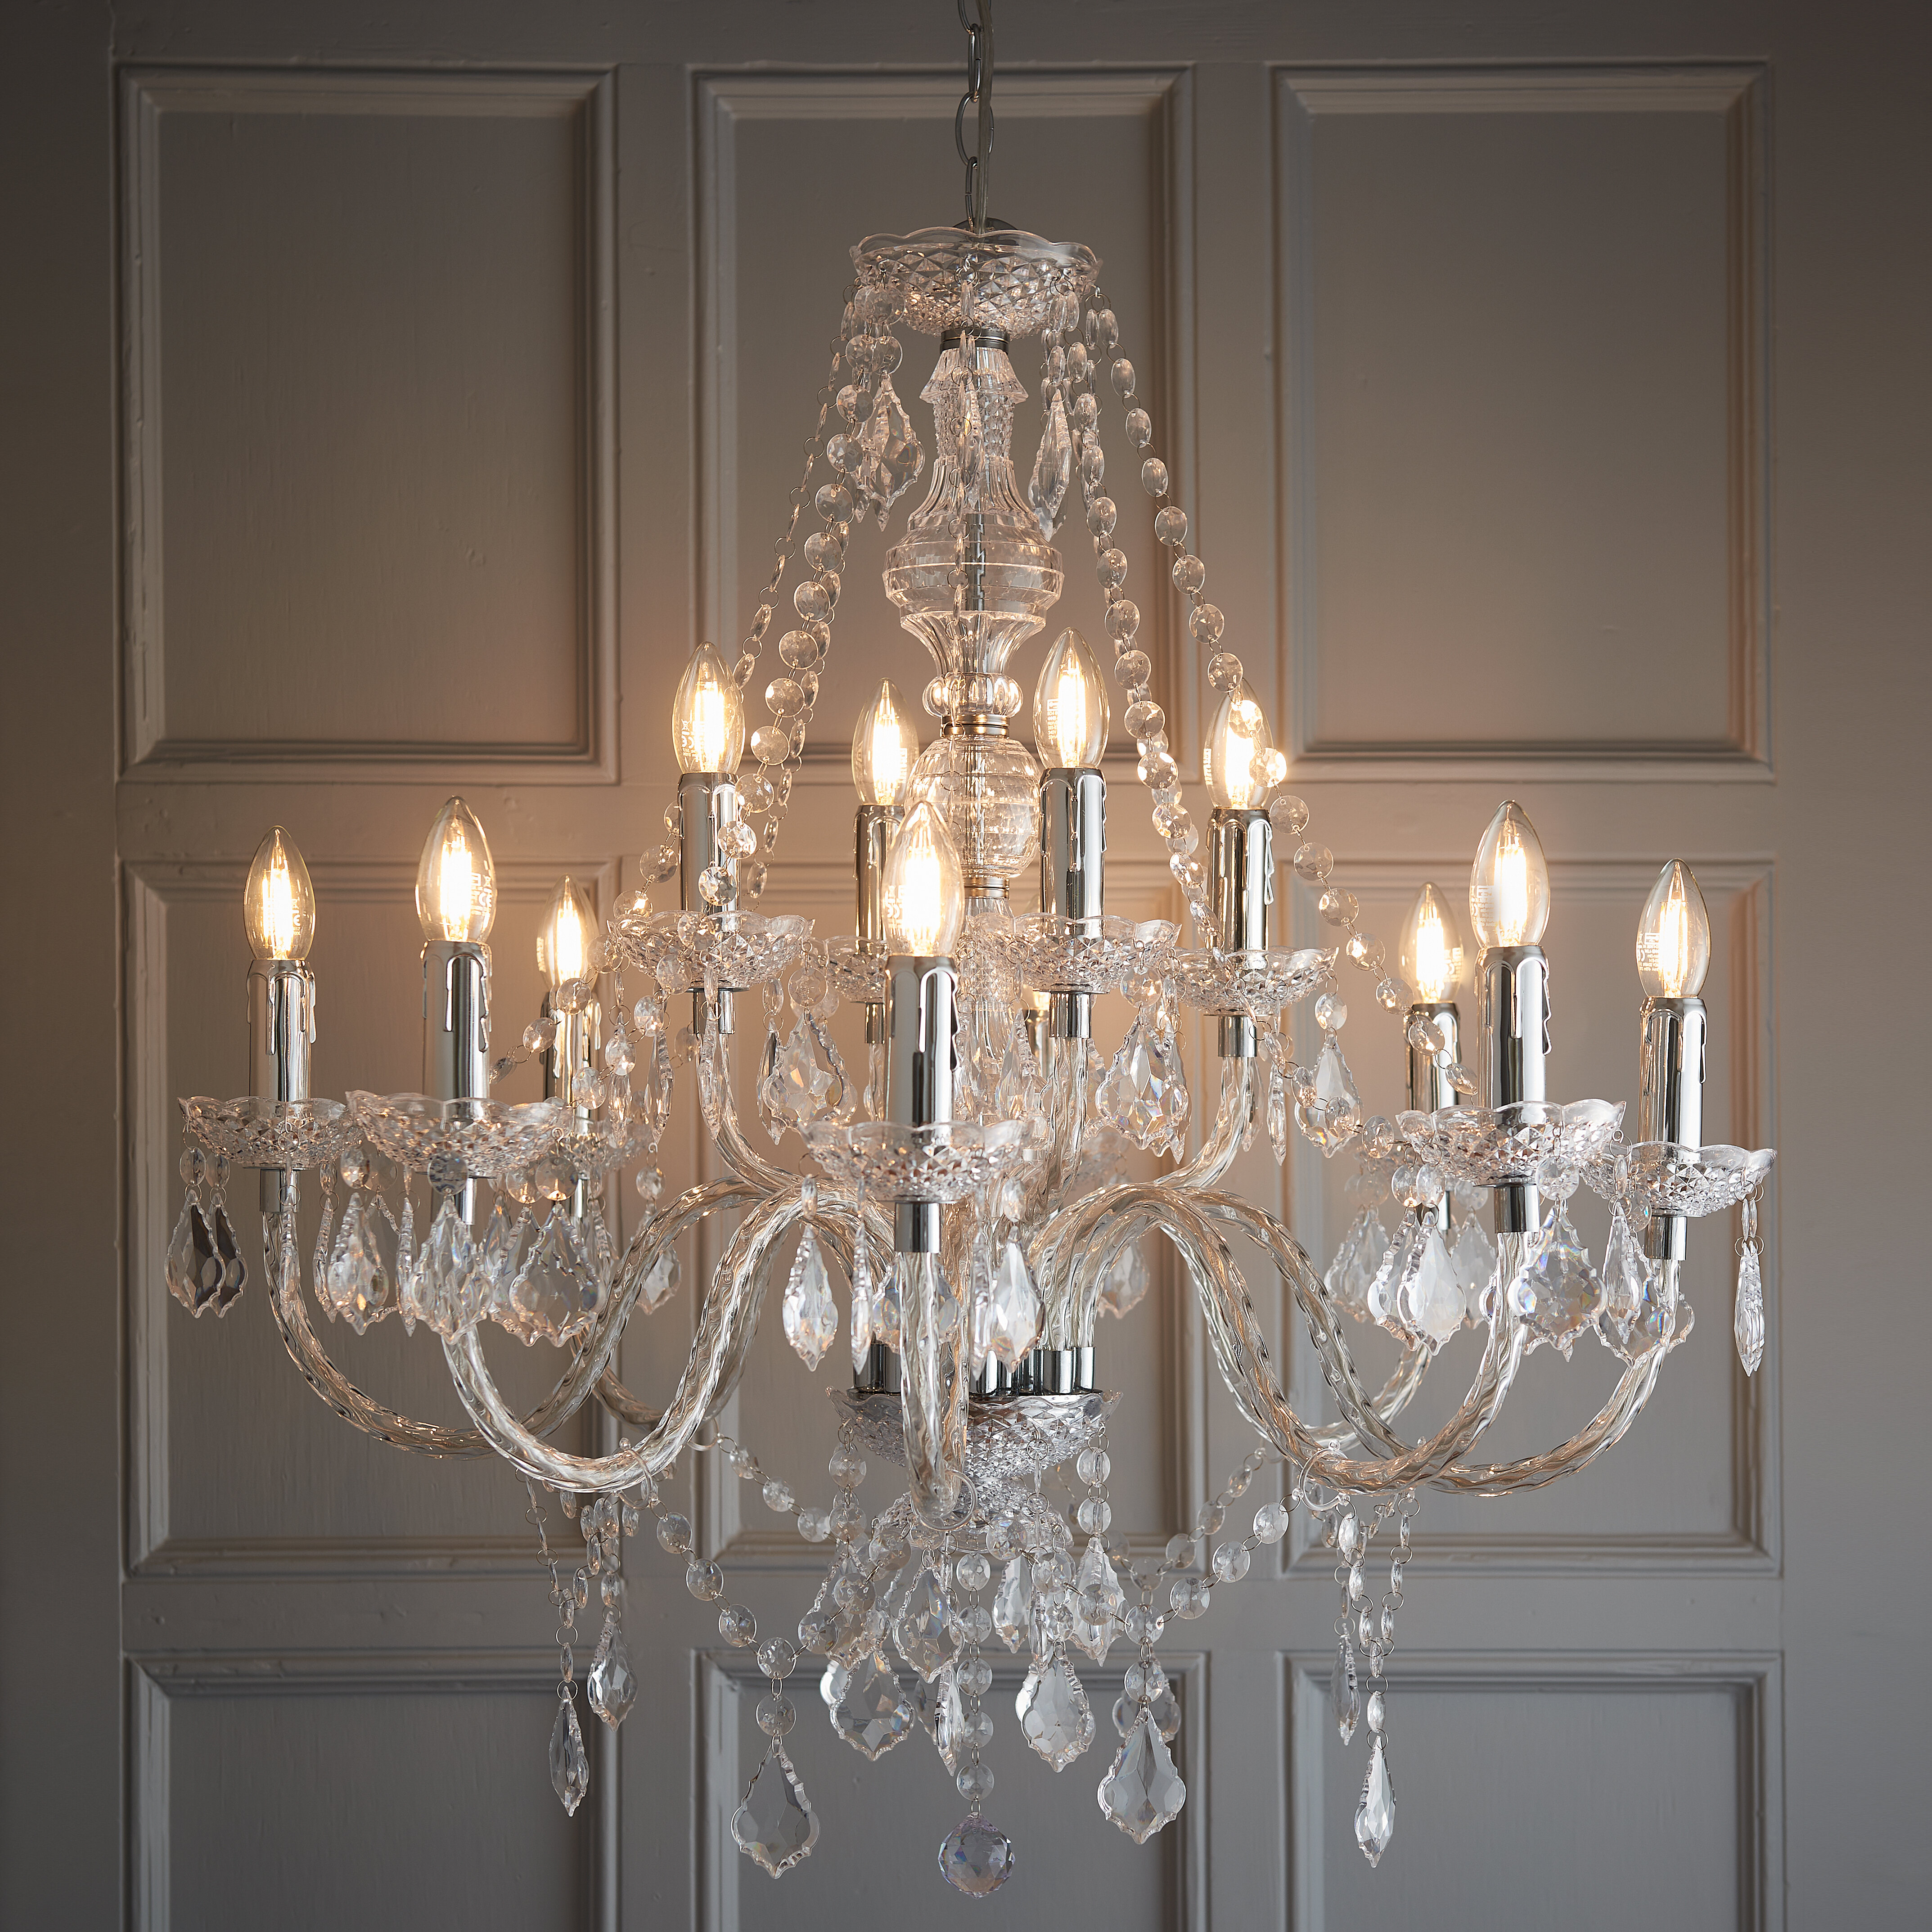 Endon Lighting Classy Candle Style Chandelier & Reviews